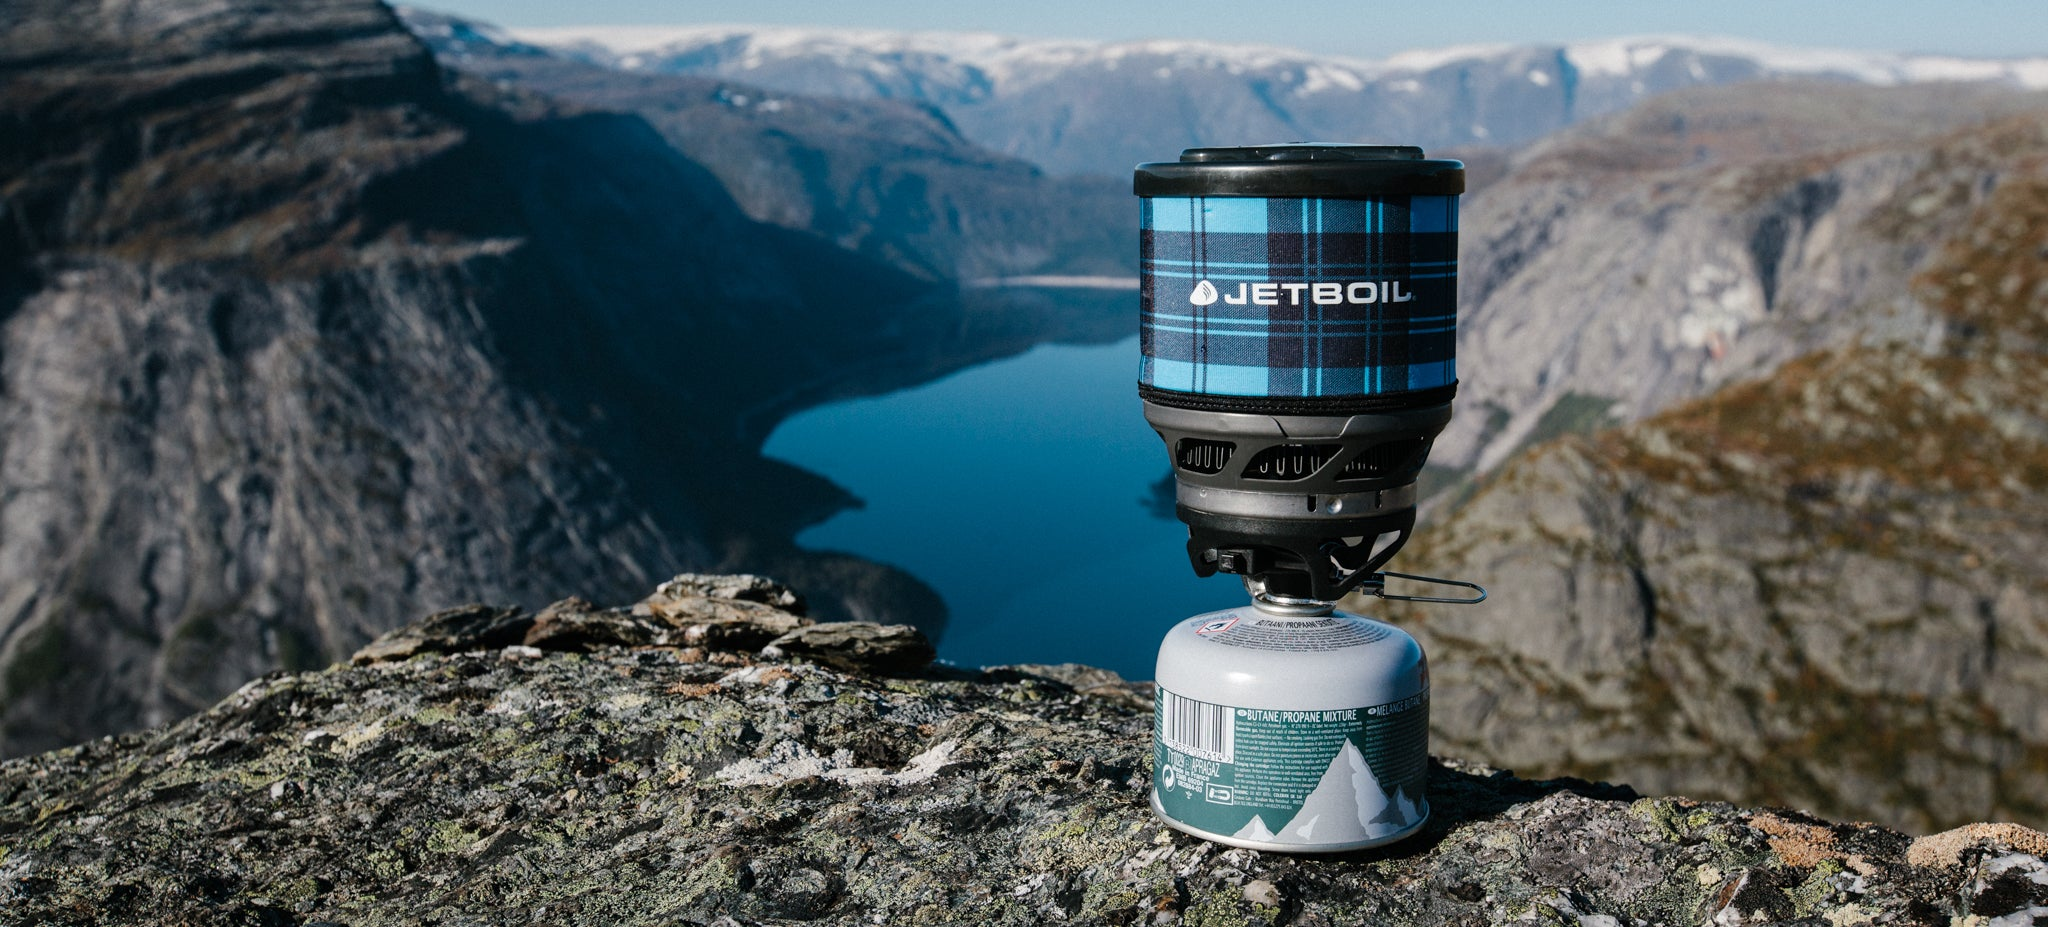 Adventure Tested: Jetboil MiniMo Backpacking Stove